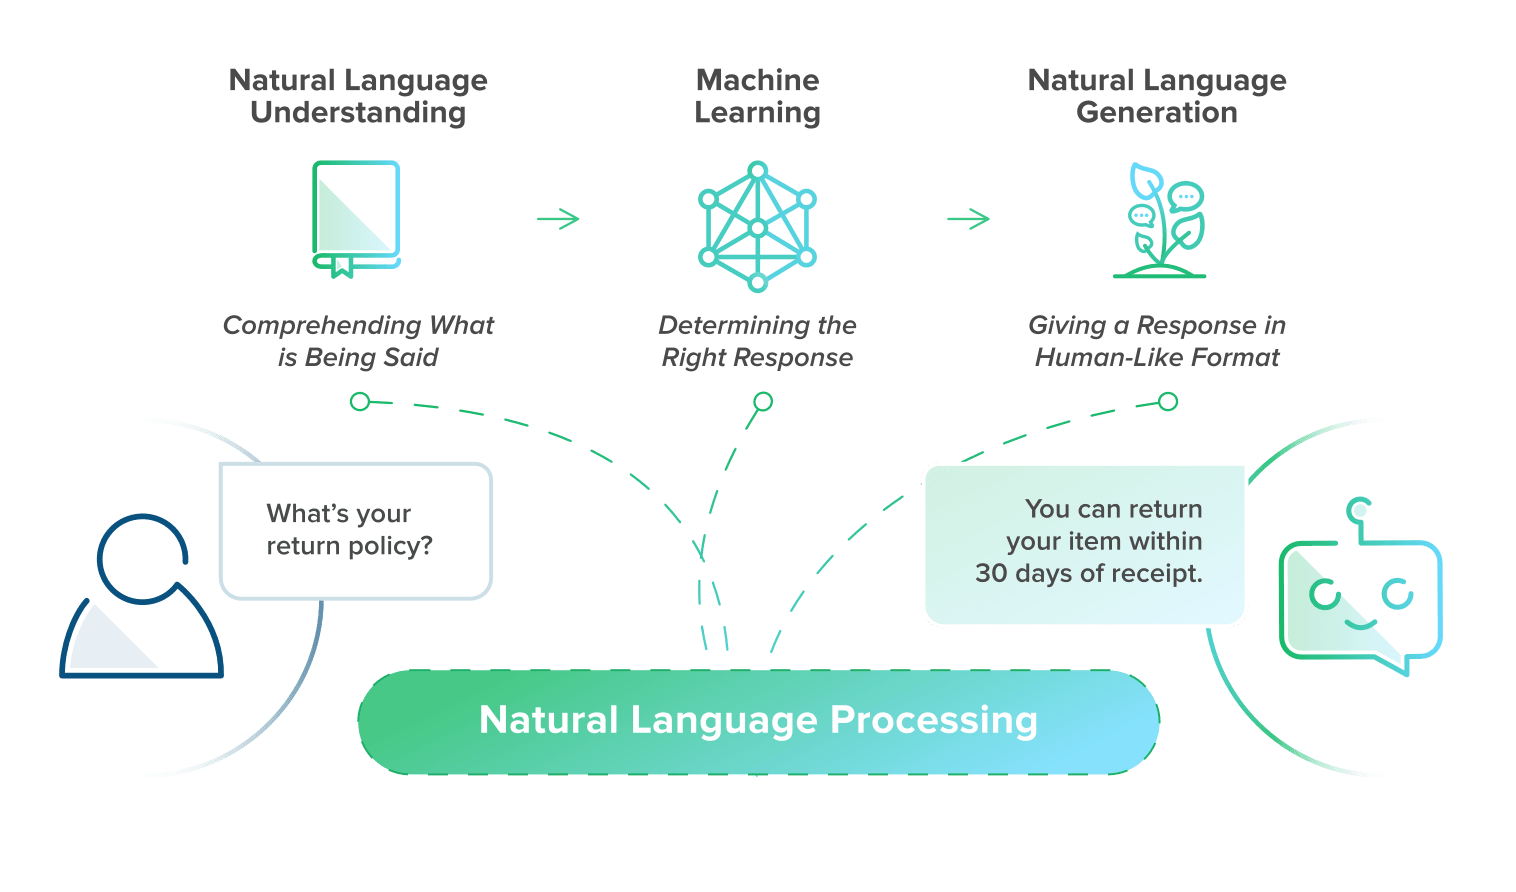 Components of Natural Language Processing (NLP)